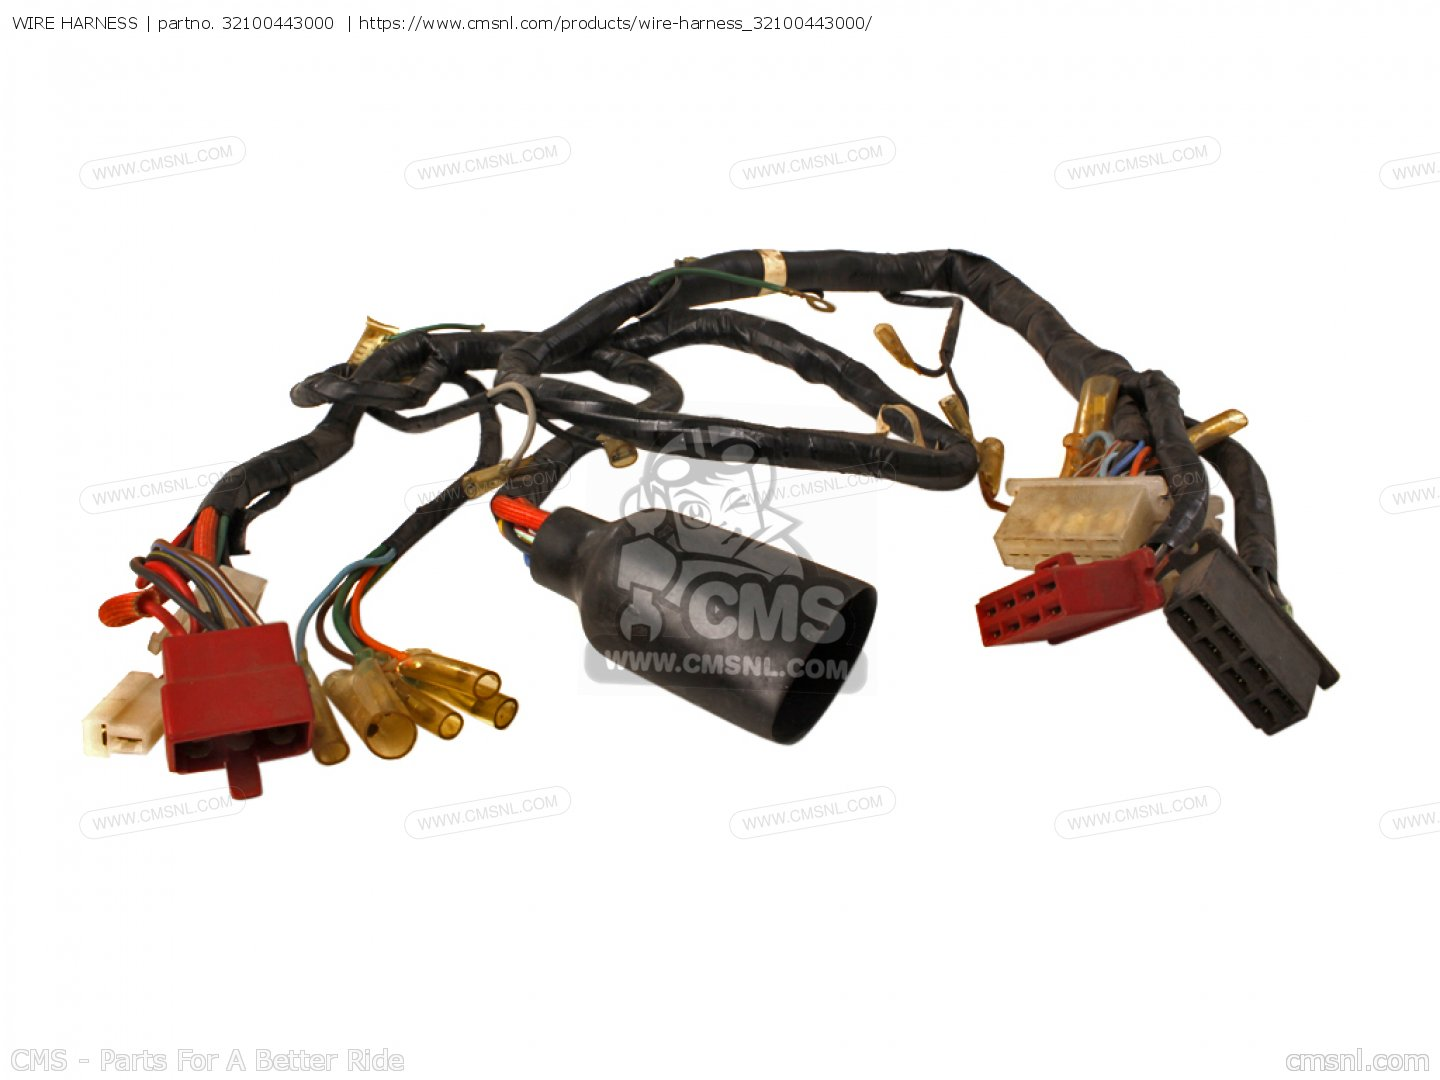 hight resolution of 32100443000 wire harness honda buy the 32100 443 000 at cmsnl wire harness photo